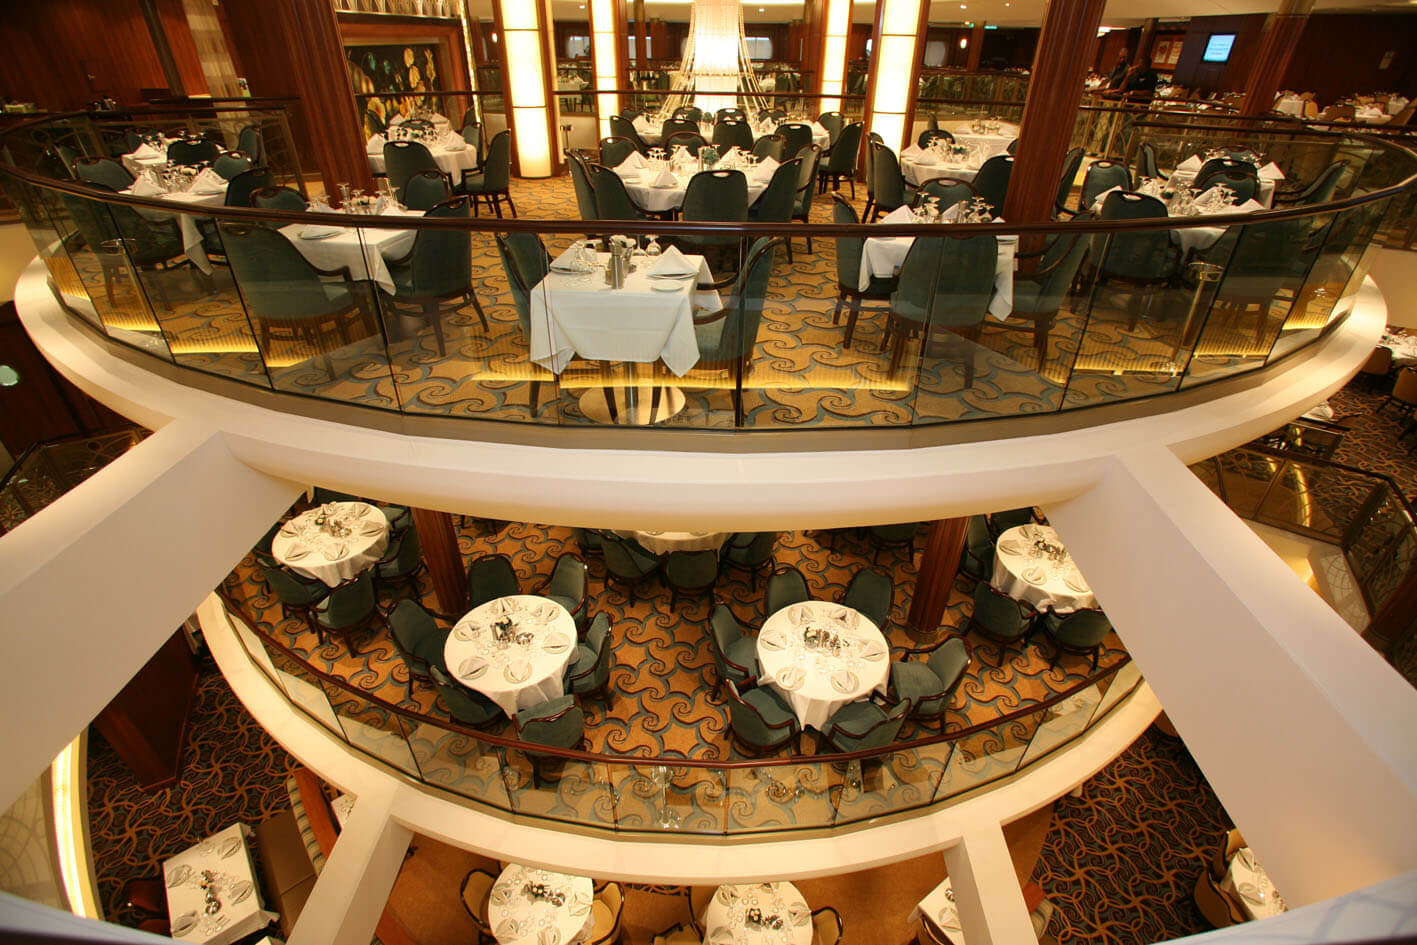 Круизный лайнер Allure of the Seas - Основной ресторан (Dining Room)